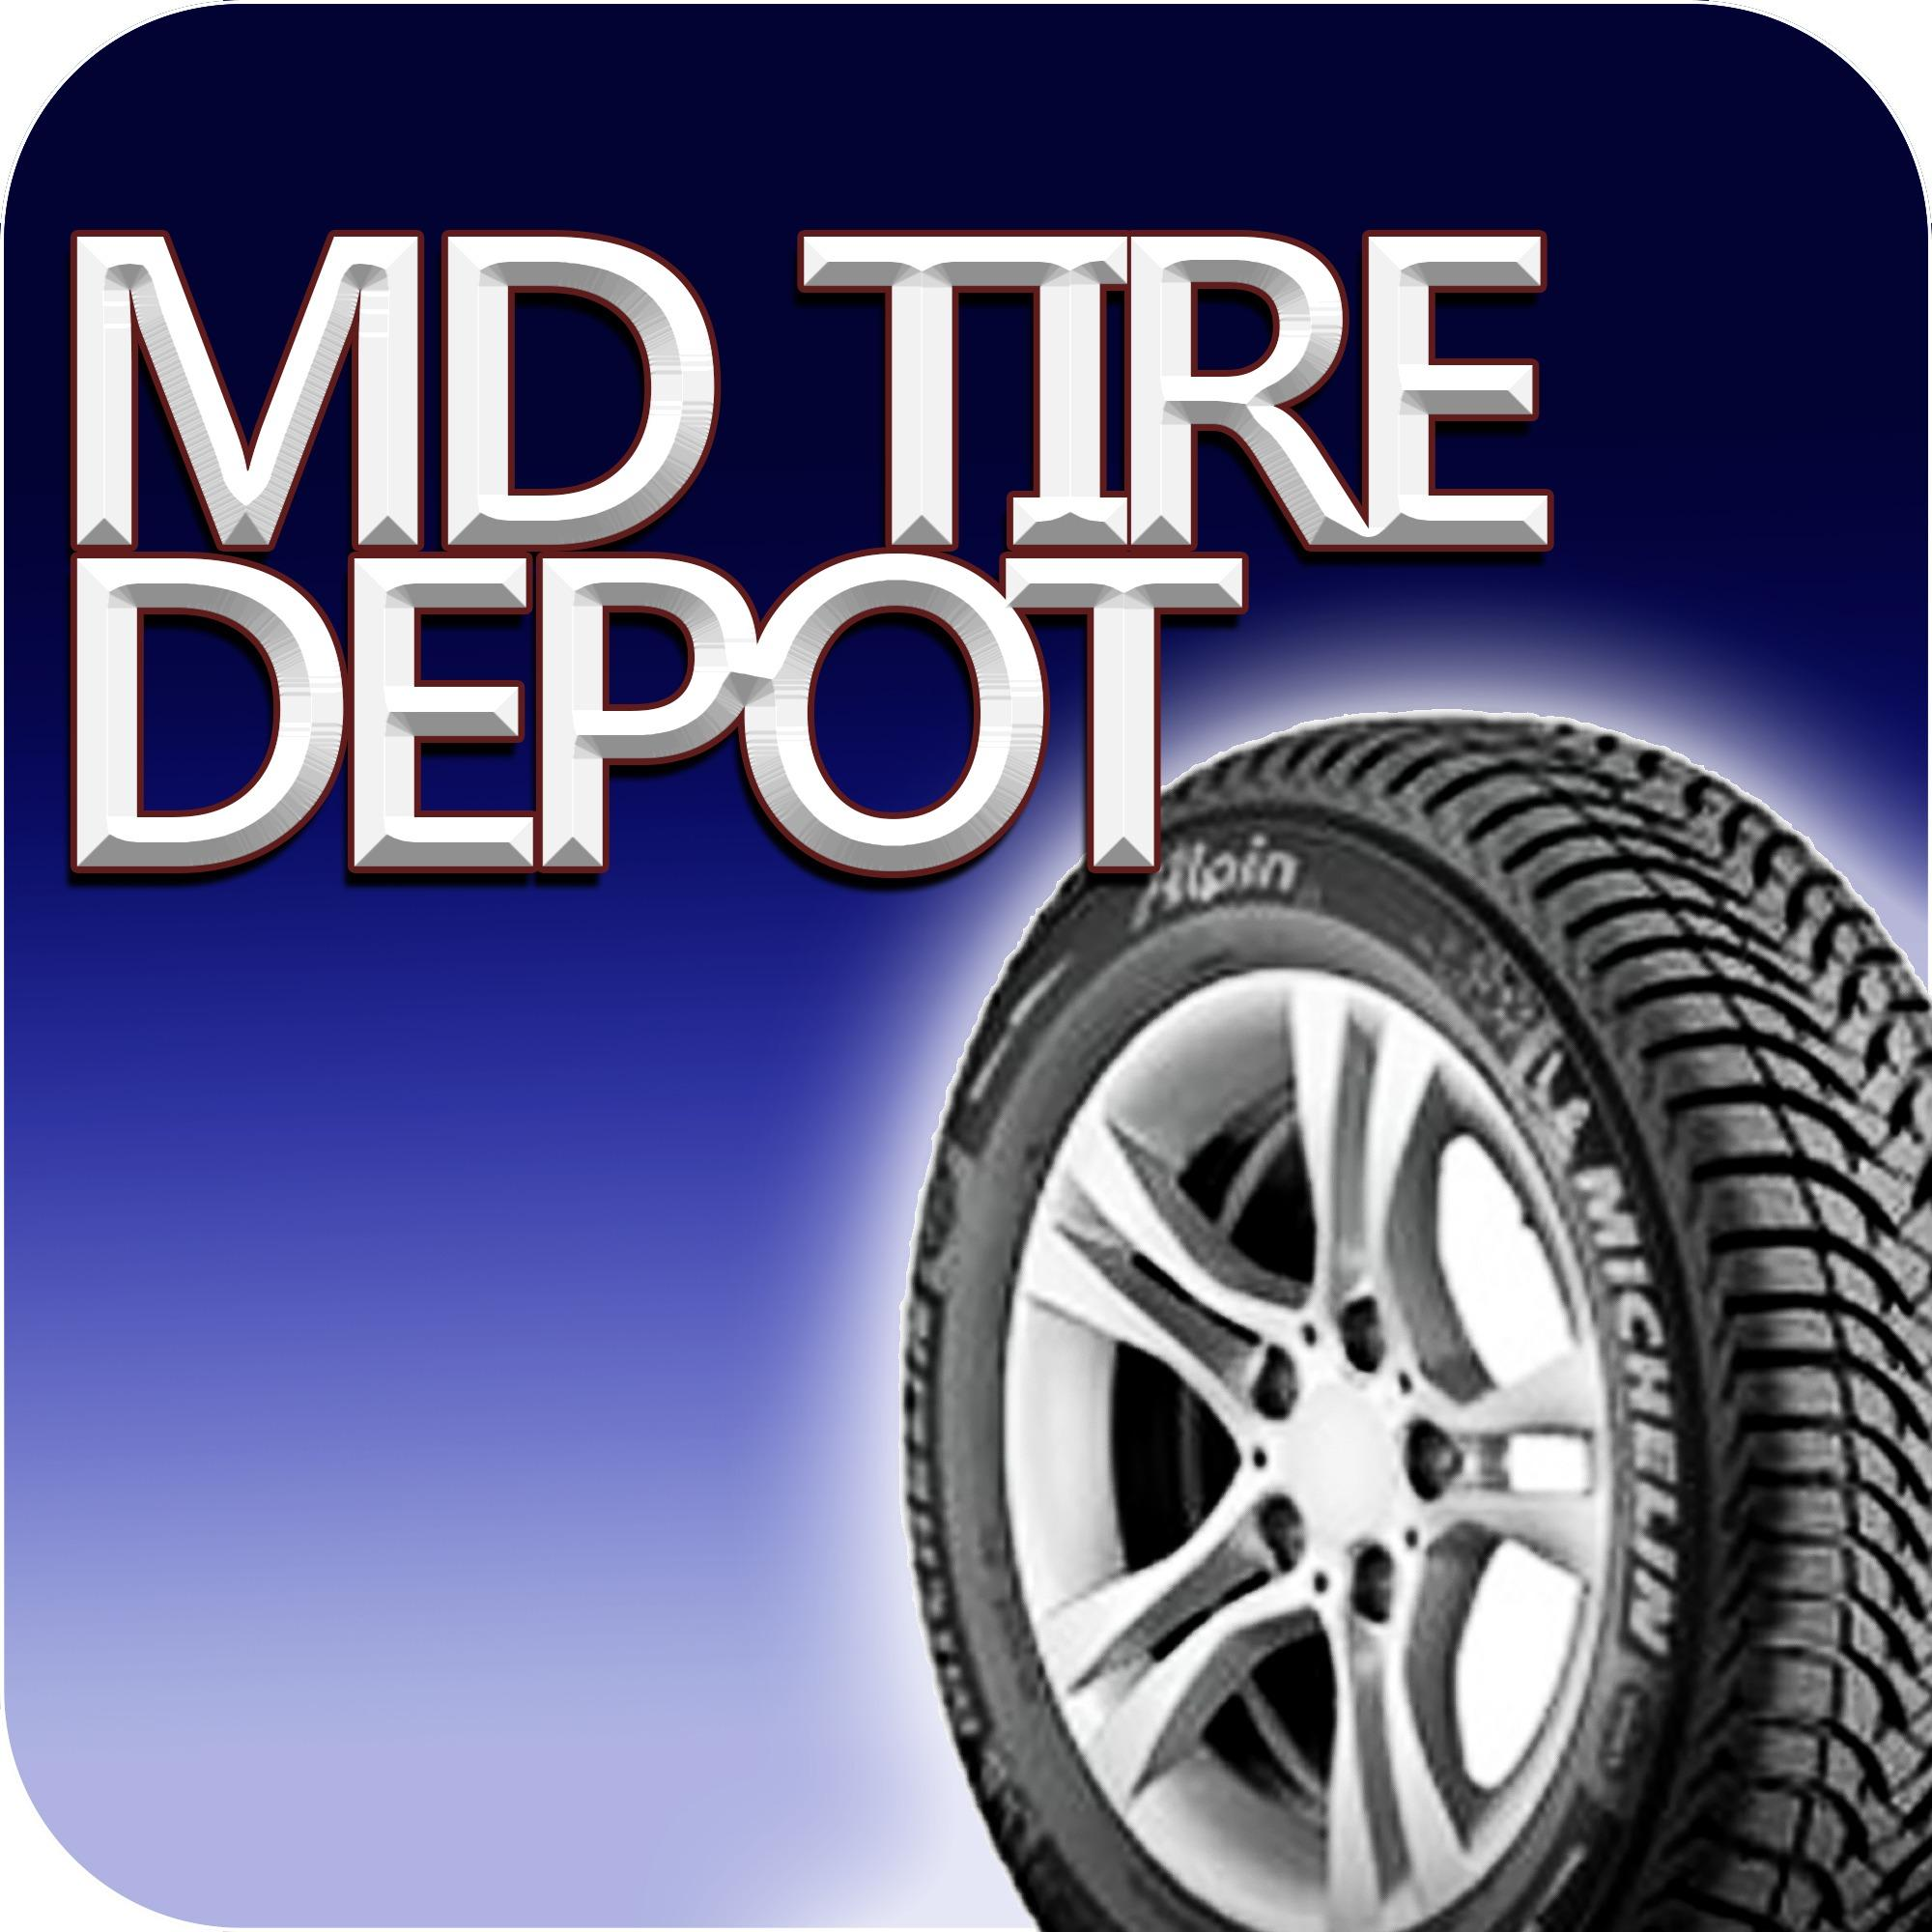 Maryland Tire Depot in Millersville, MD   Whitepages